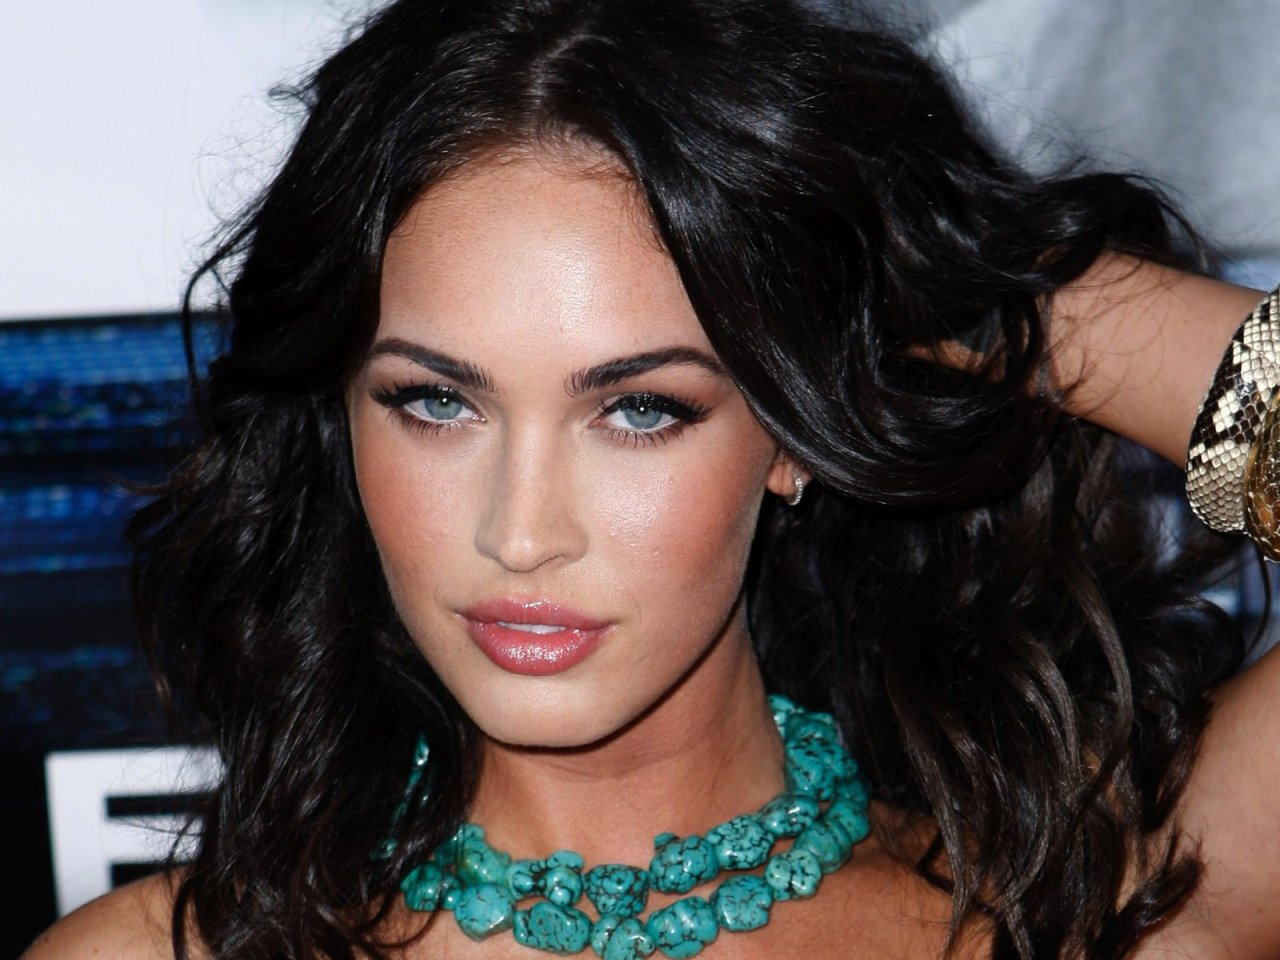 megan-fox-hd-wallpapers-hnf-megan-fox-picture-and-photo-fip